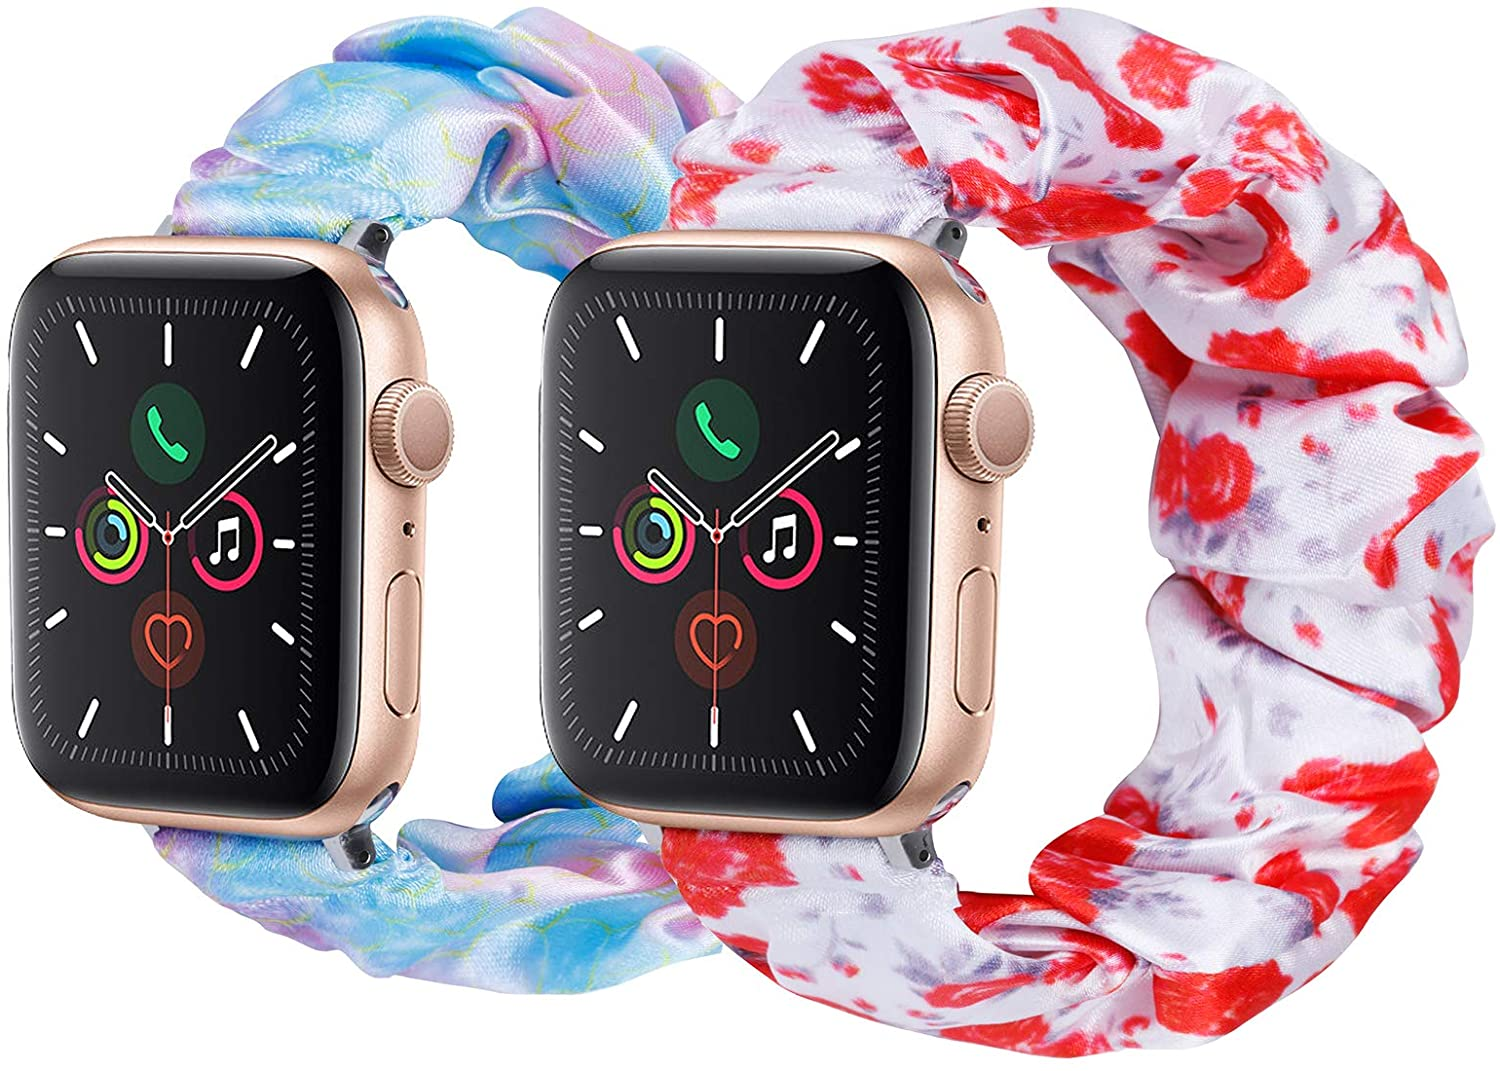 2 Pack Cute Scrunchie Elastic Watch Band Compatible for Apple Watch,38mm 40mm, 42mm 44mm,Printed Band Replacement Strap for iWatch Series 6,5,4,3,2,1(2 Pack-No.13+14, 42MM 44MM)